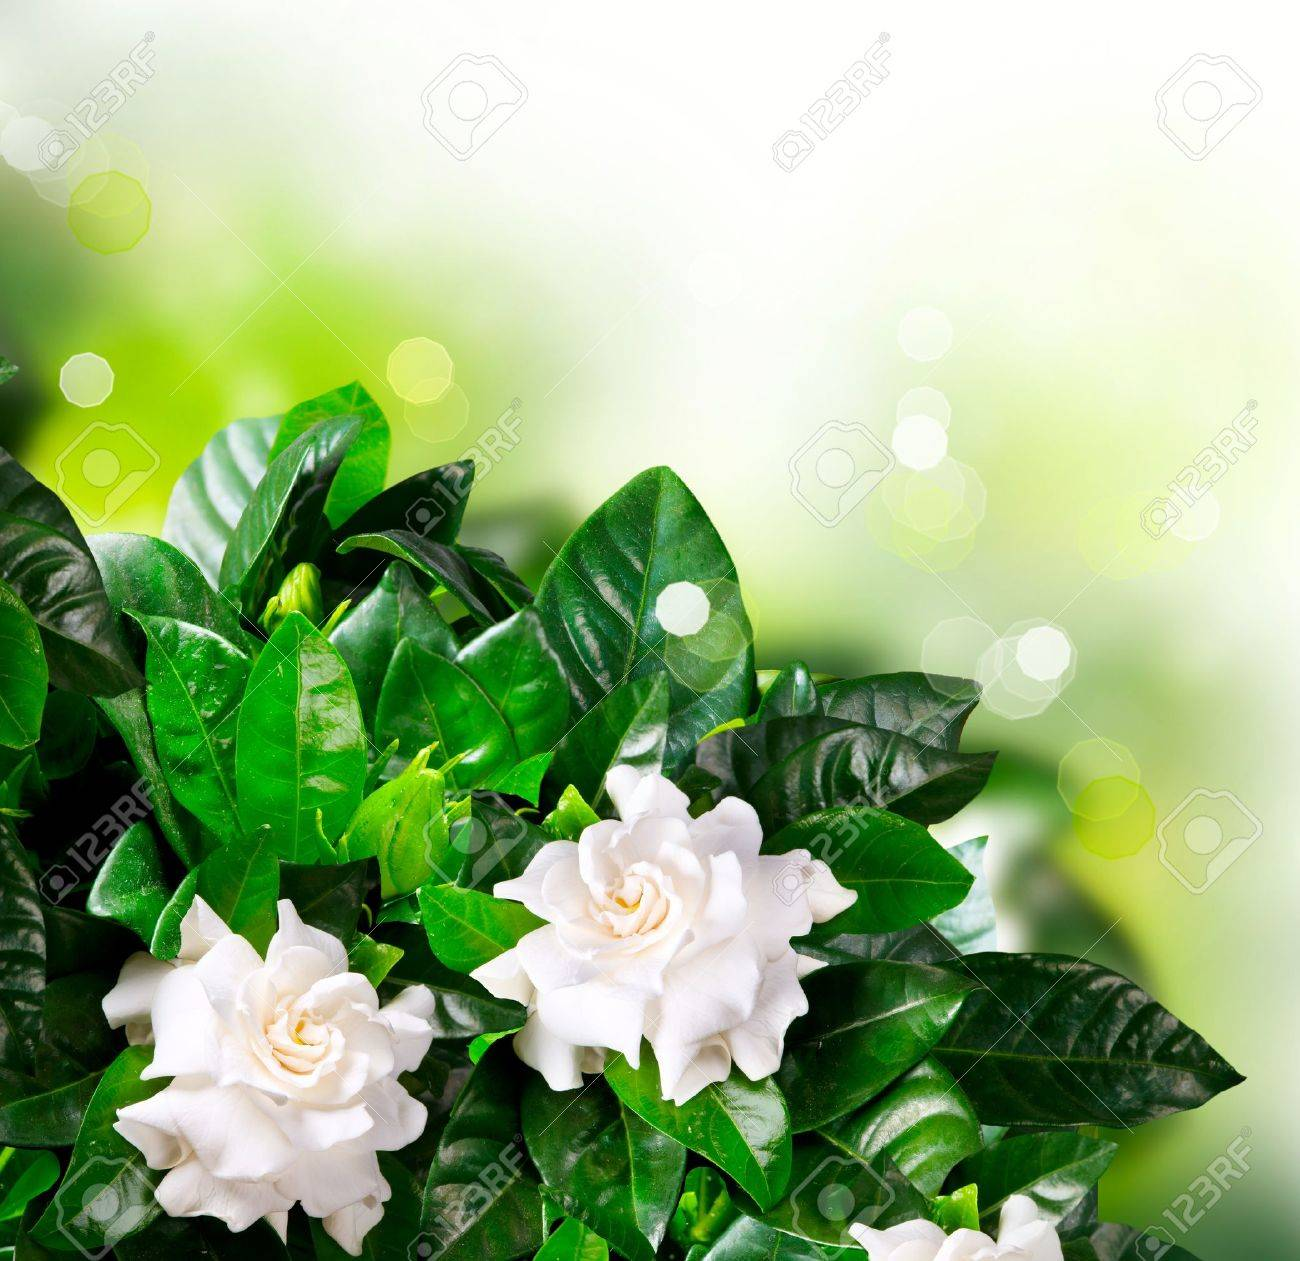 Gardenia Flowers Jasmine Stock Photo Picture And Royalty Free Image